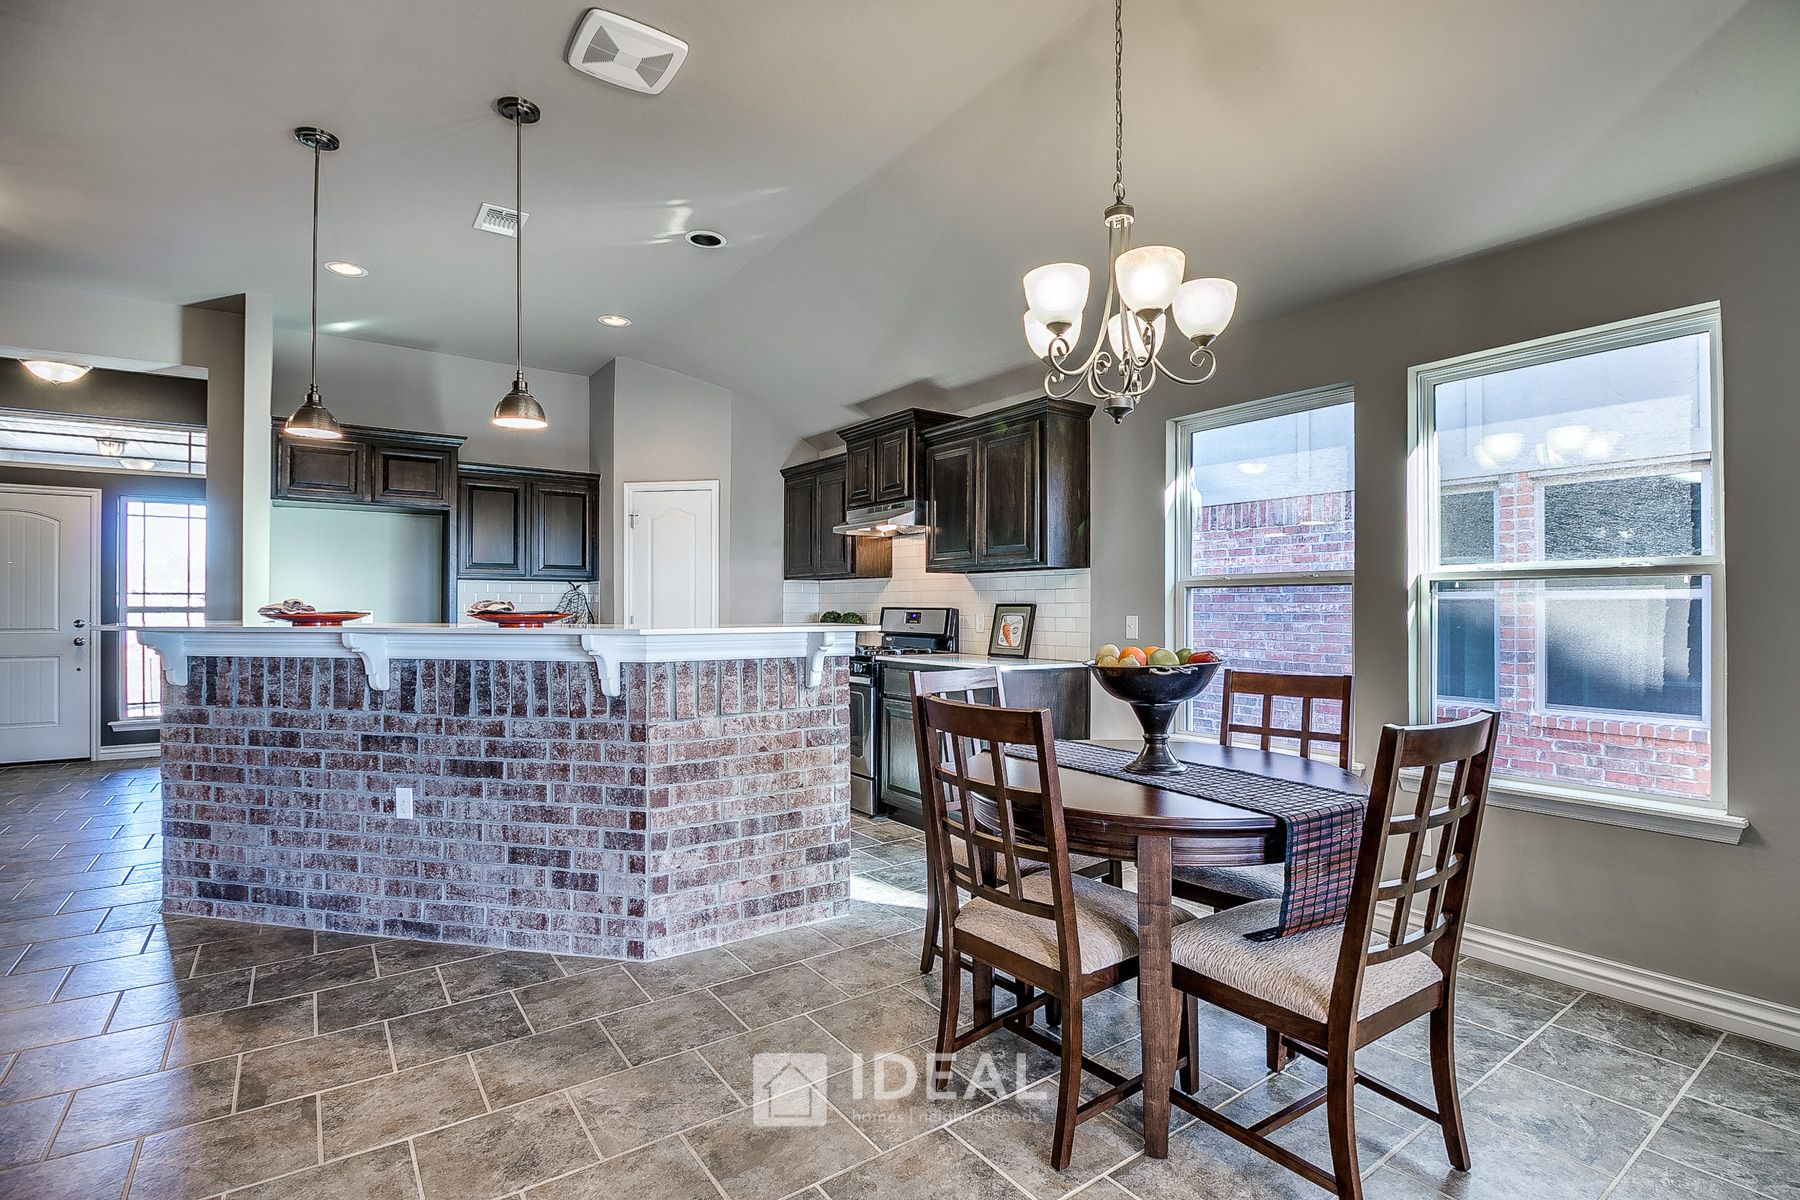 Kitchen featured in the Kensington By Ideal Homes in Oklahoma City, OK